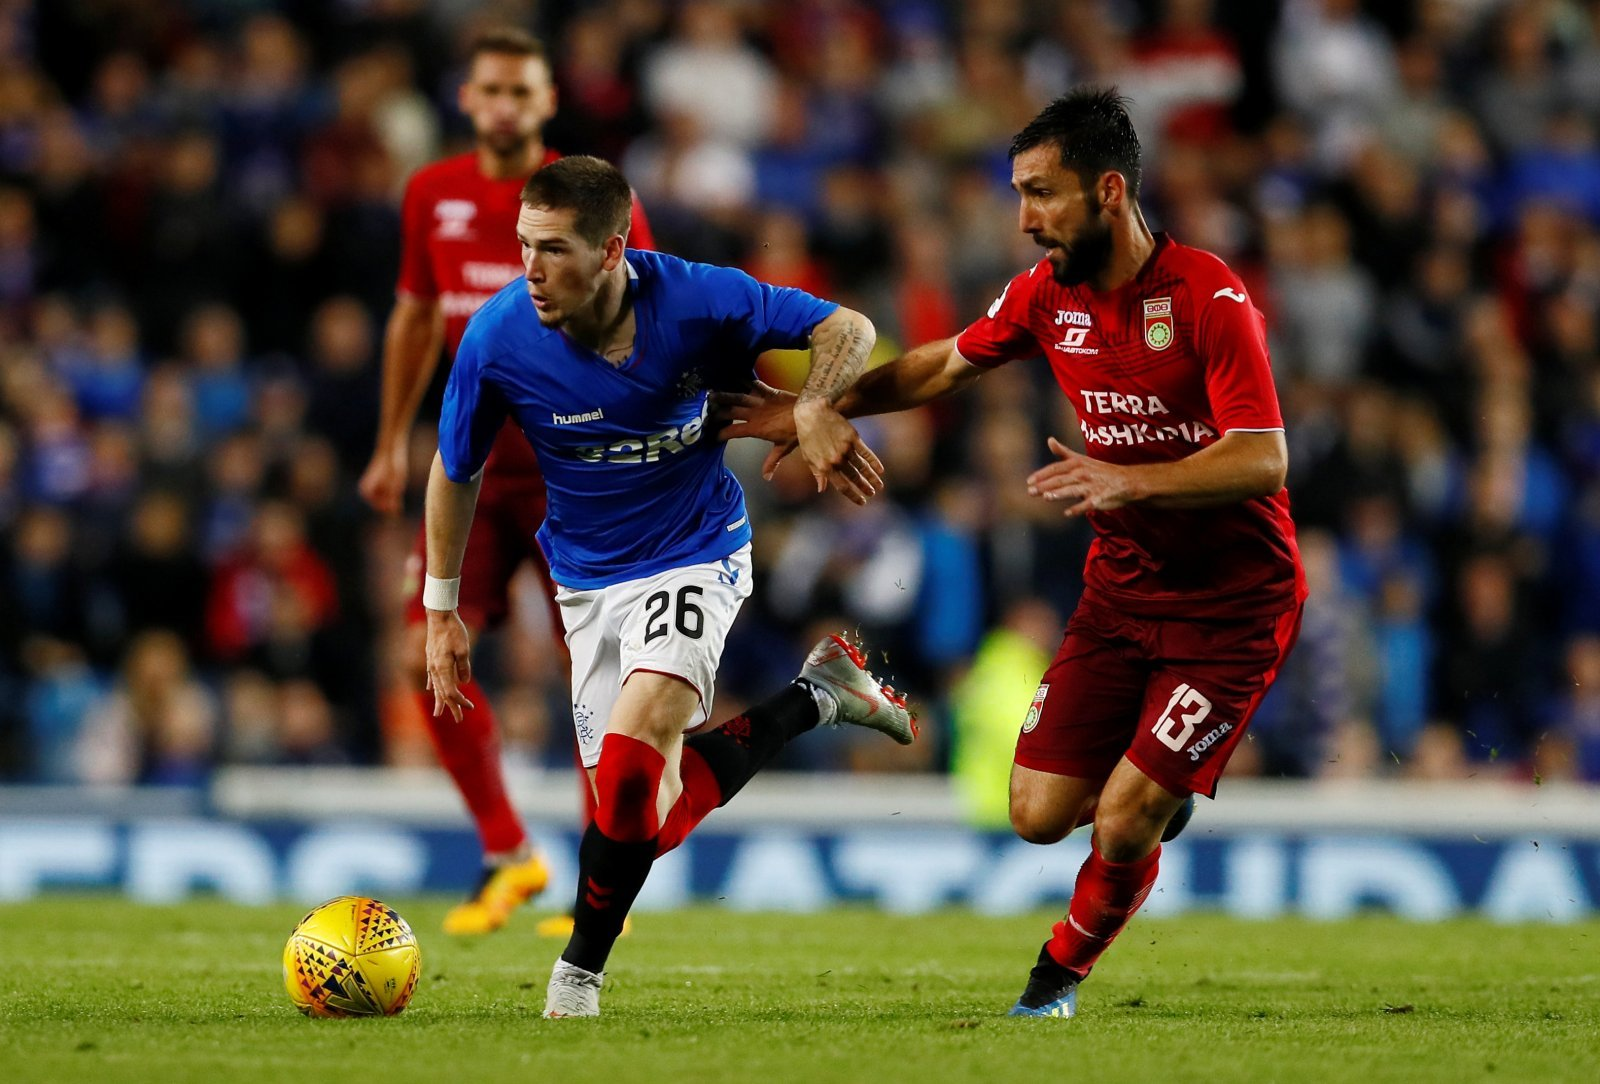 Rangers: It's time to speculate to accumulate and show more ambition